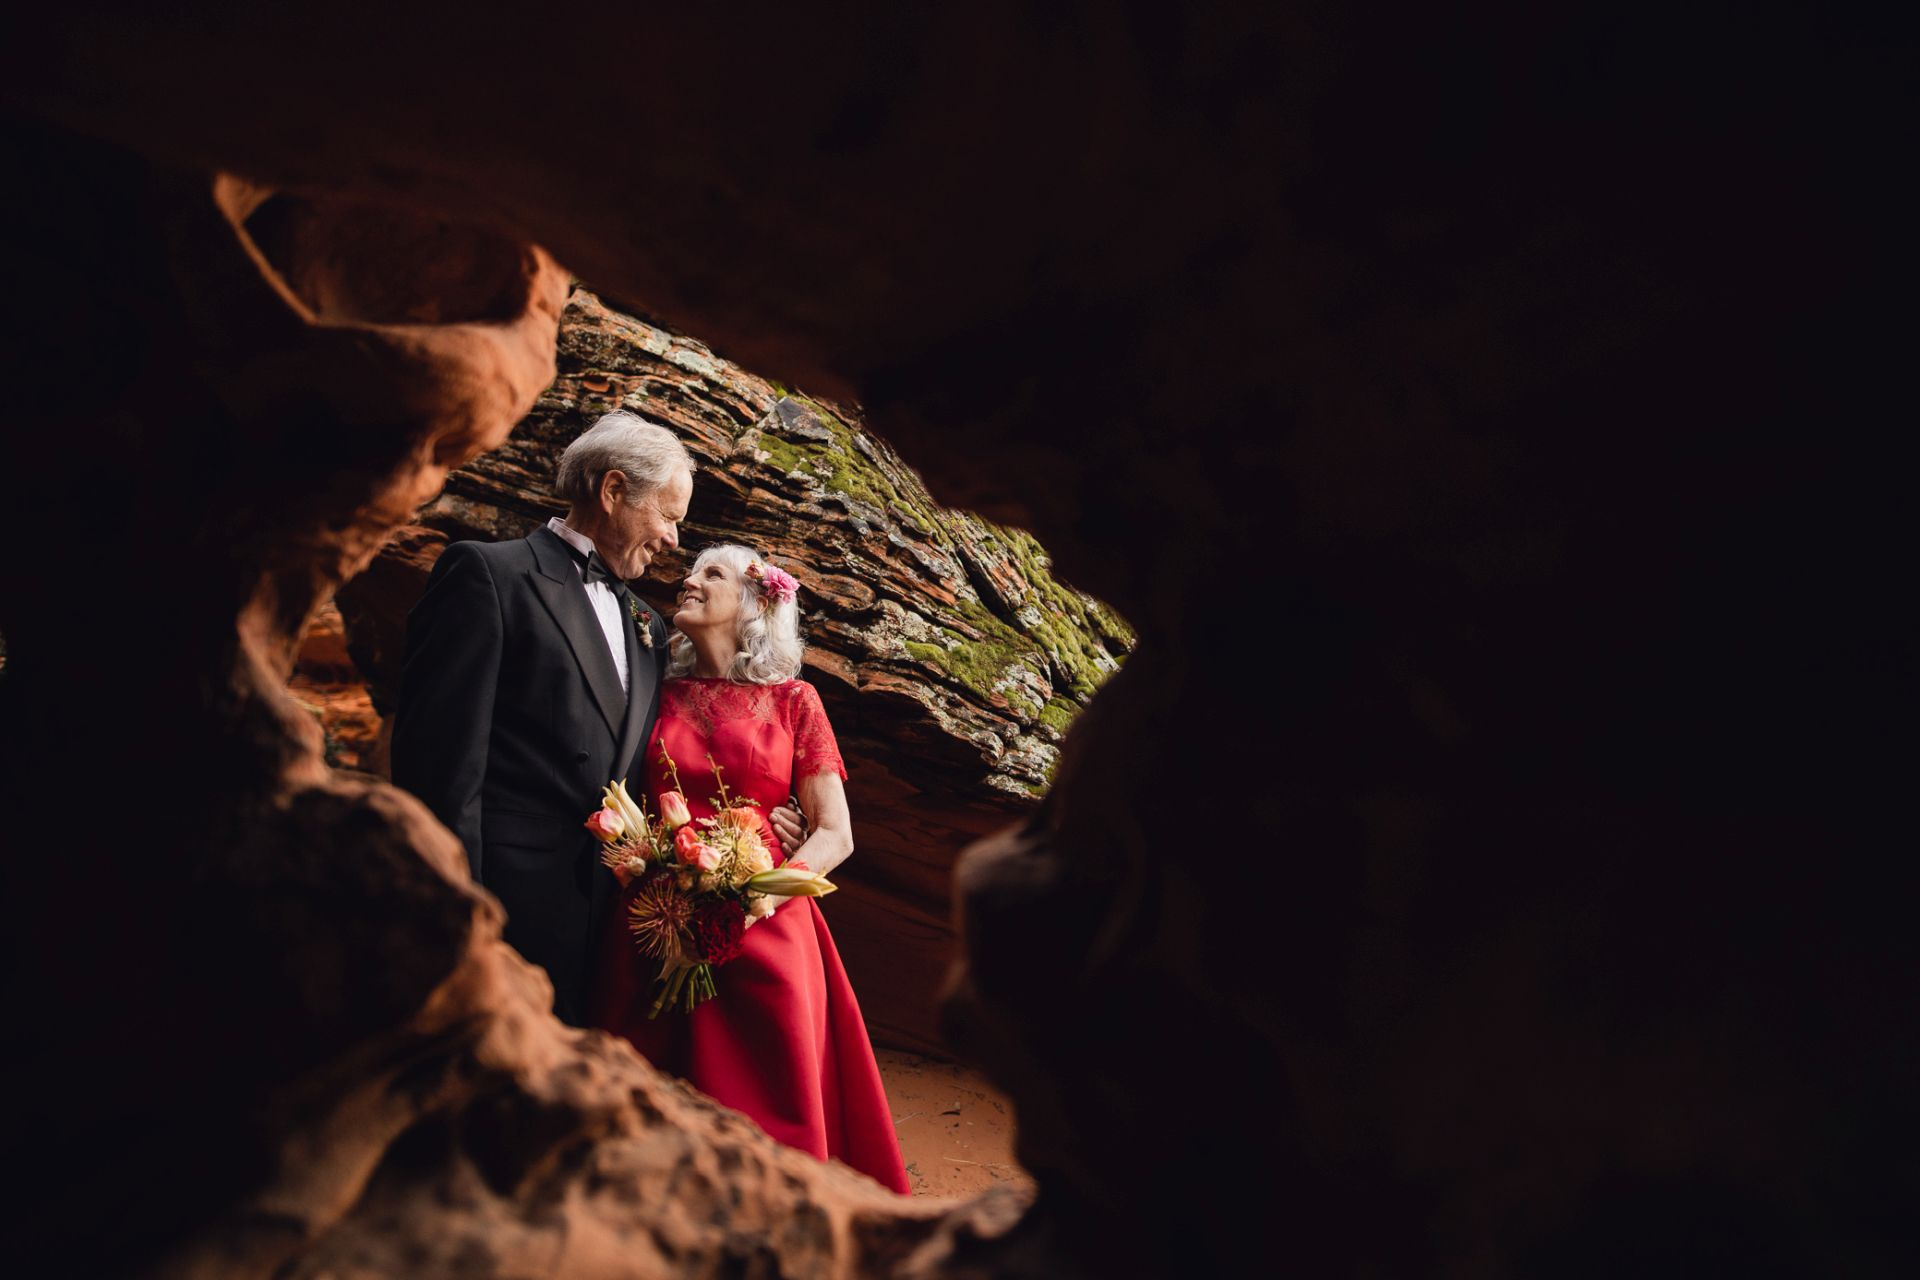 adventure wedding in the utah desert - couple photographed in spectacular cave